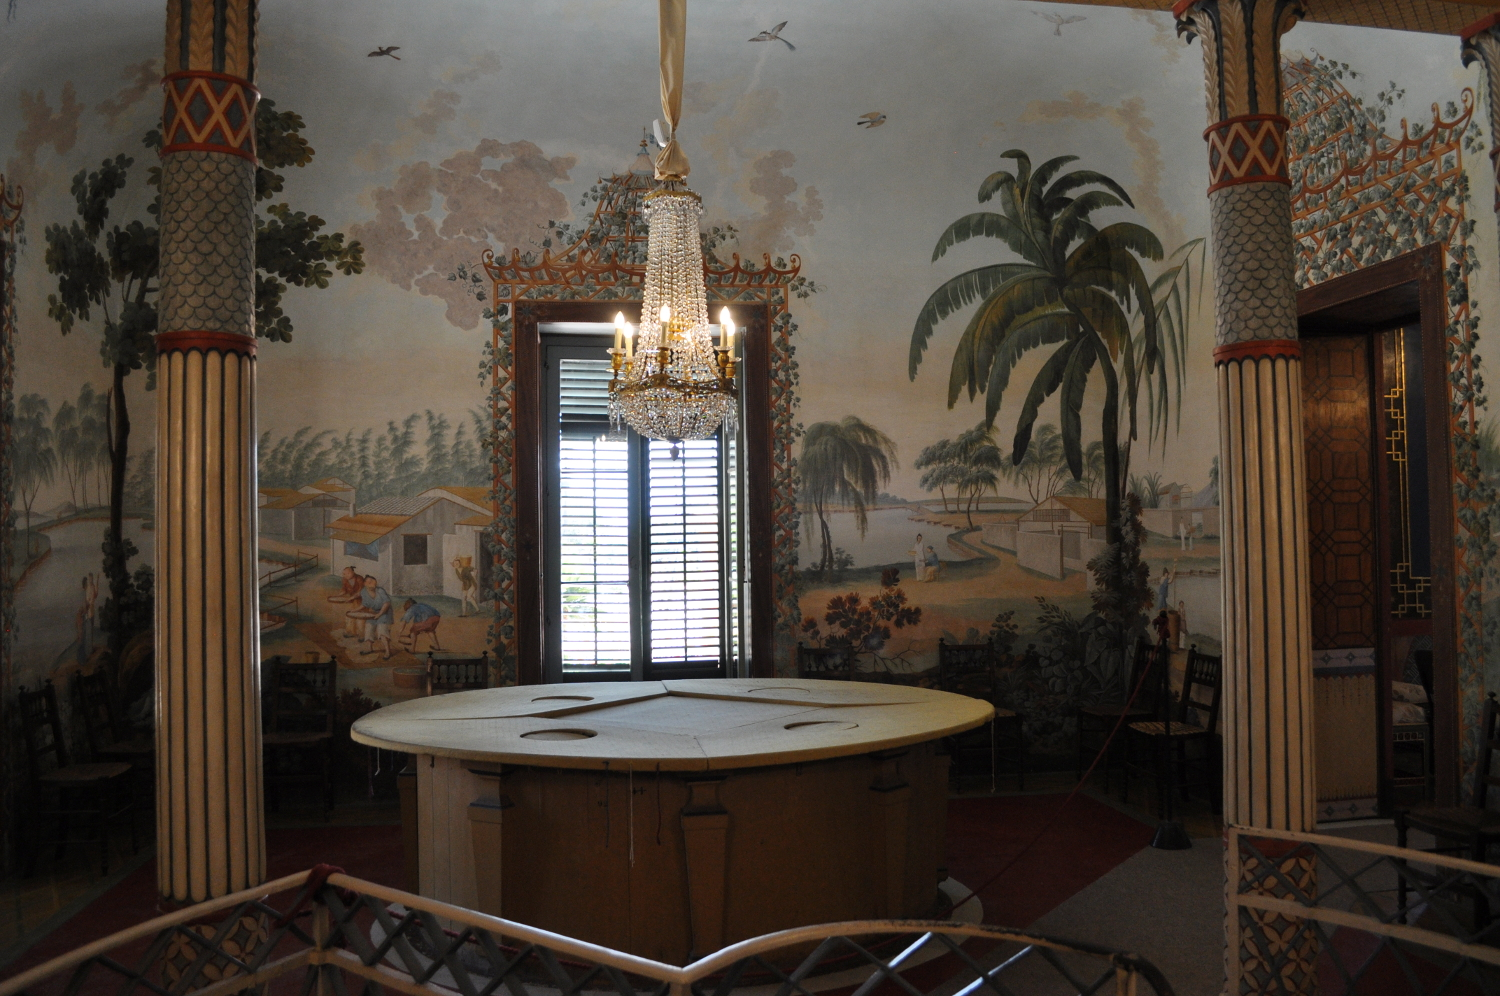 rocaille-blog-palazzina-cinese-palermo-9